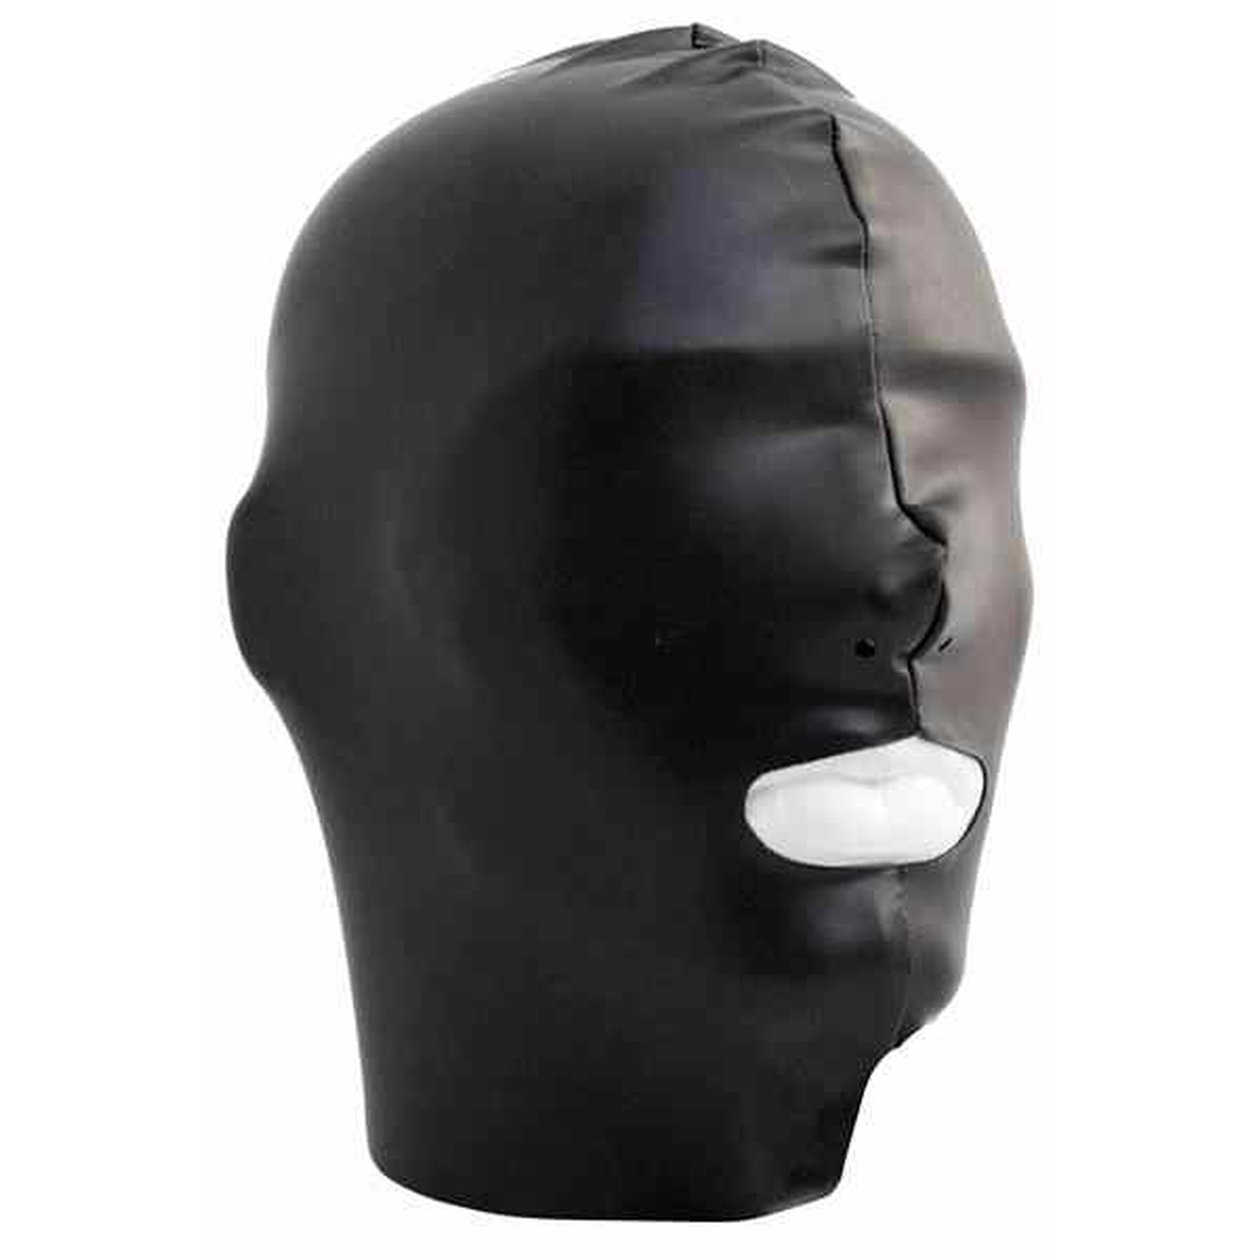 Mister B Datex Hood Mouth Open Only Black